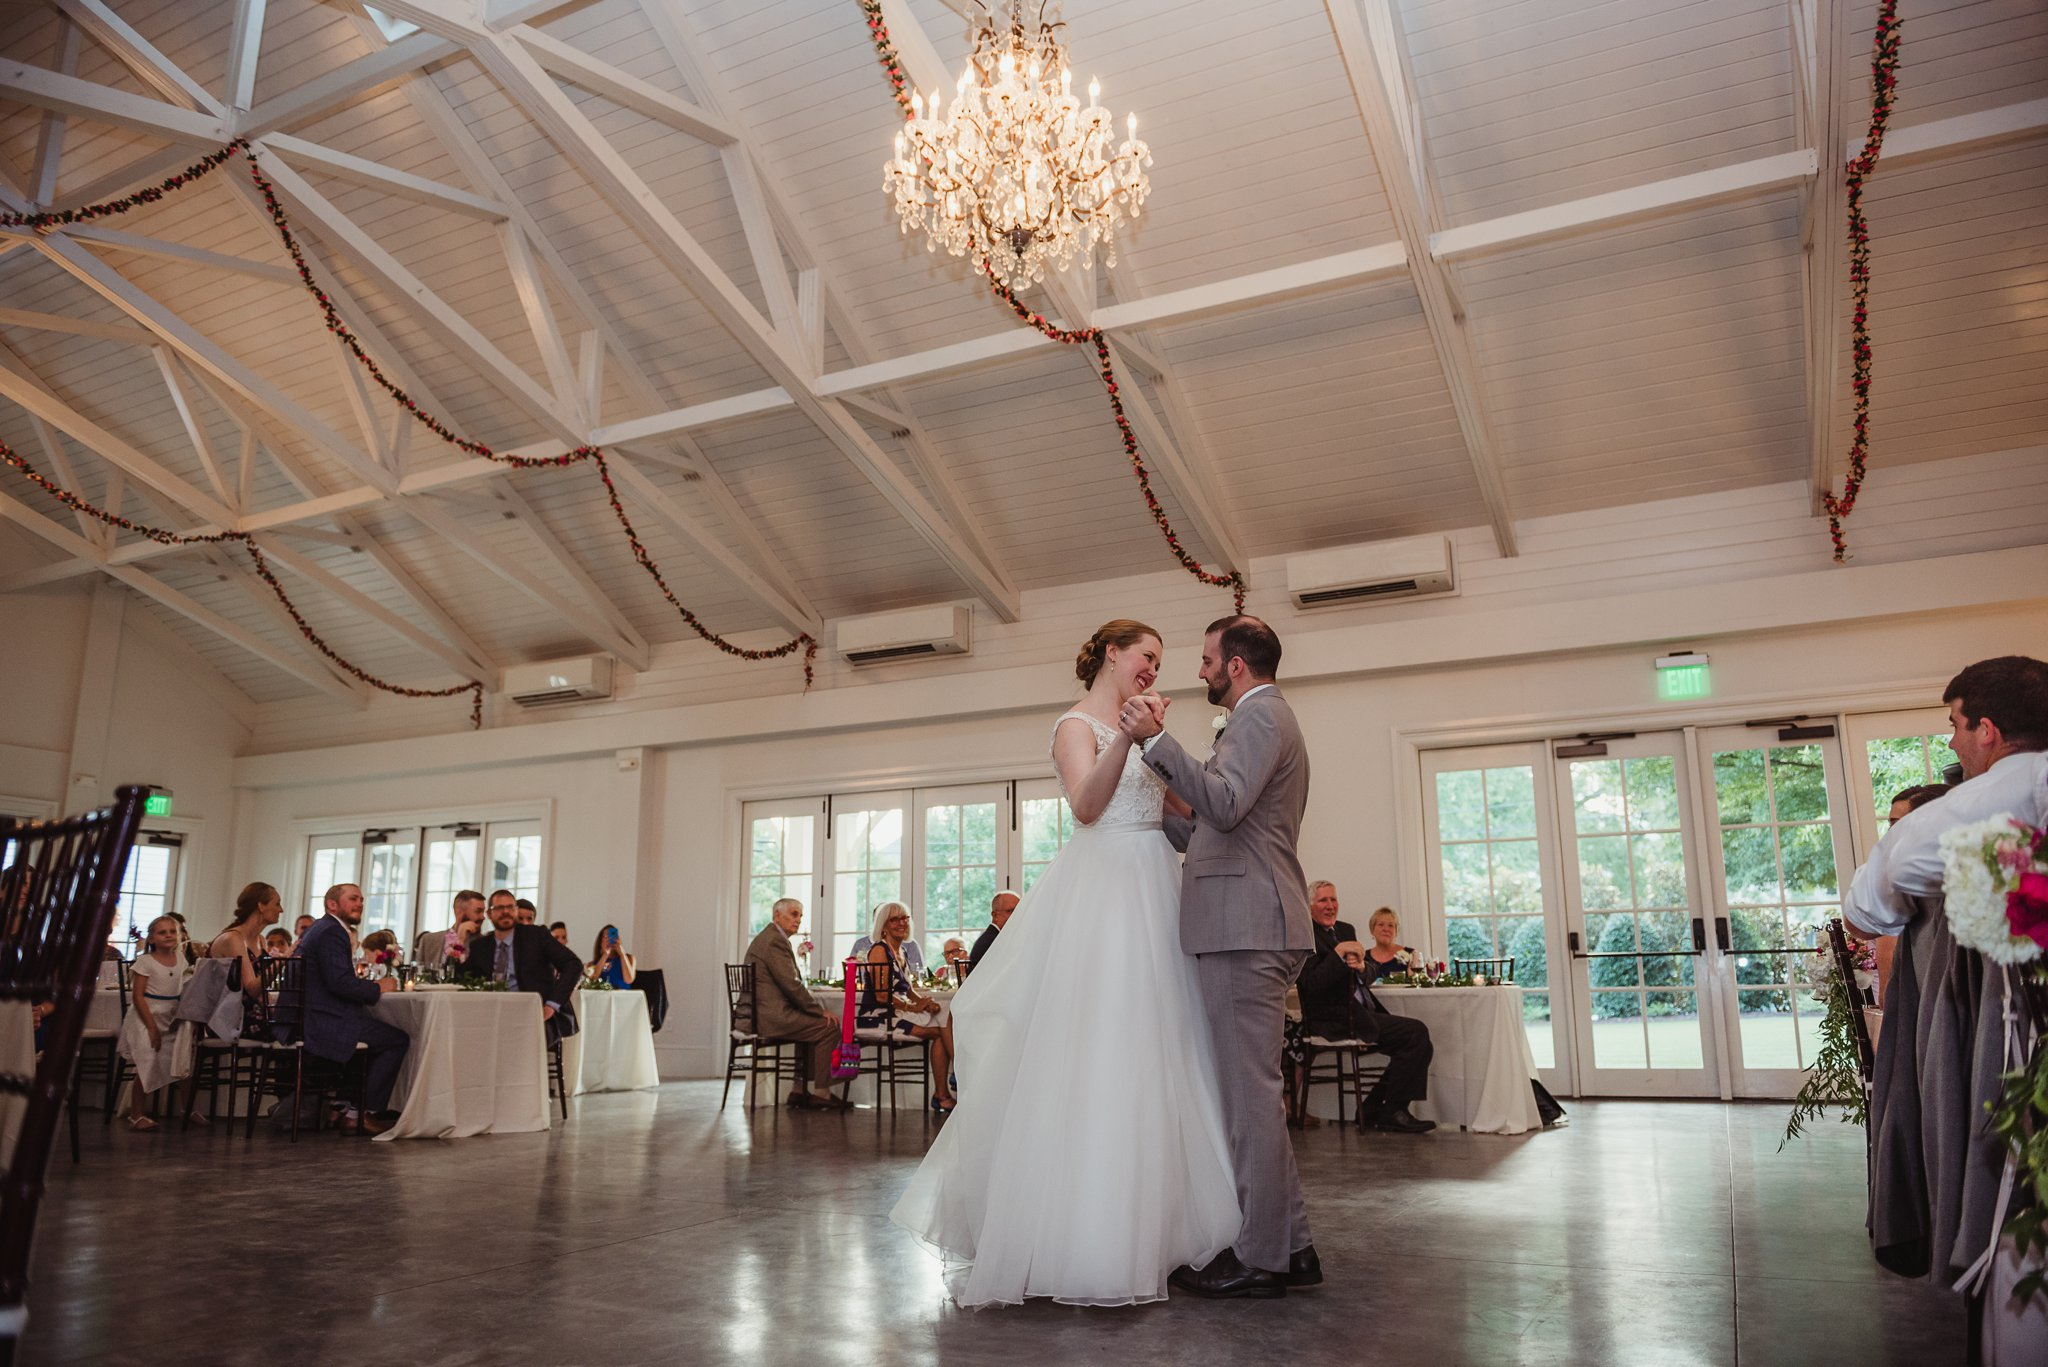 The bride and groom share a first dance during their wedding reception at the Merrimon Wynne in Raleigh, photos by Rose Trail Images.